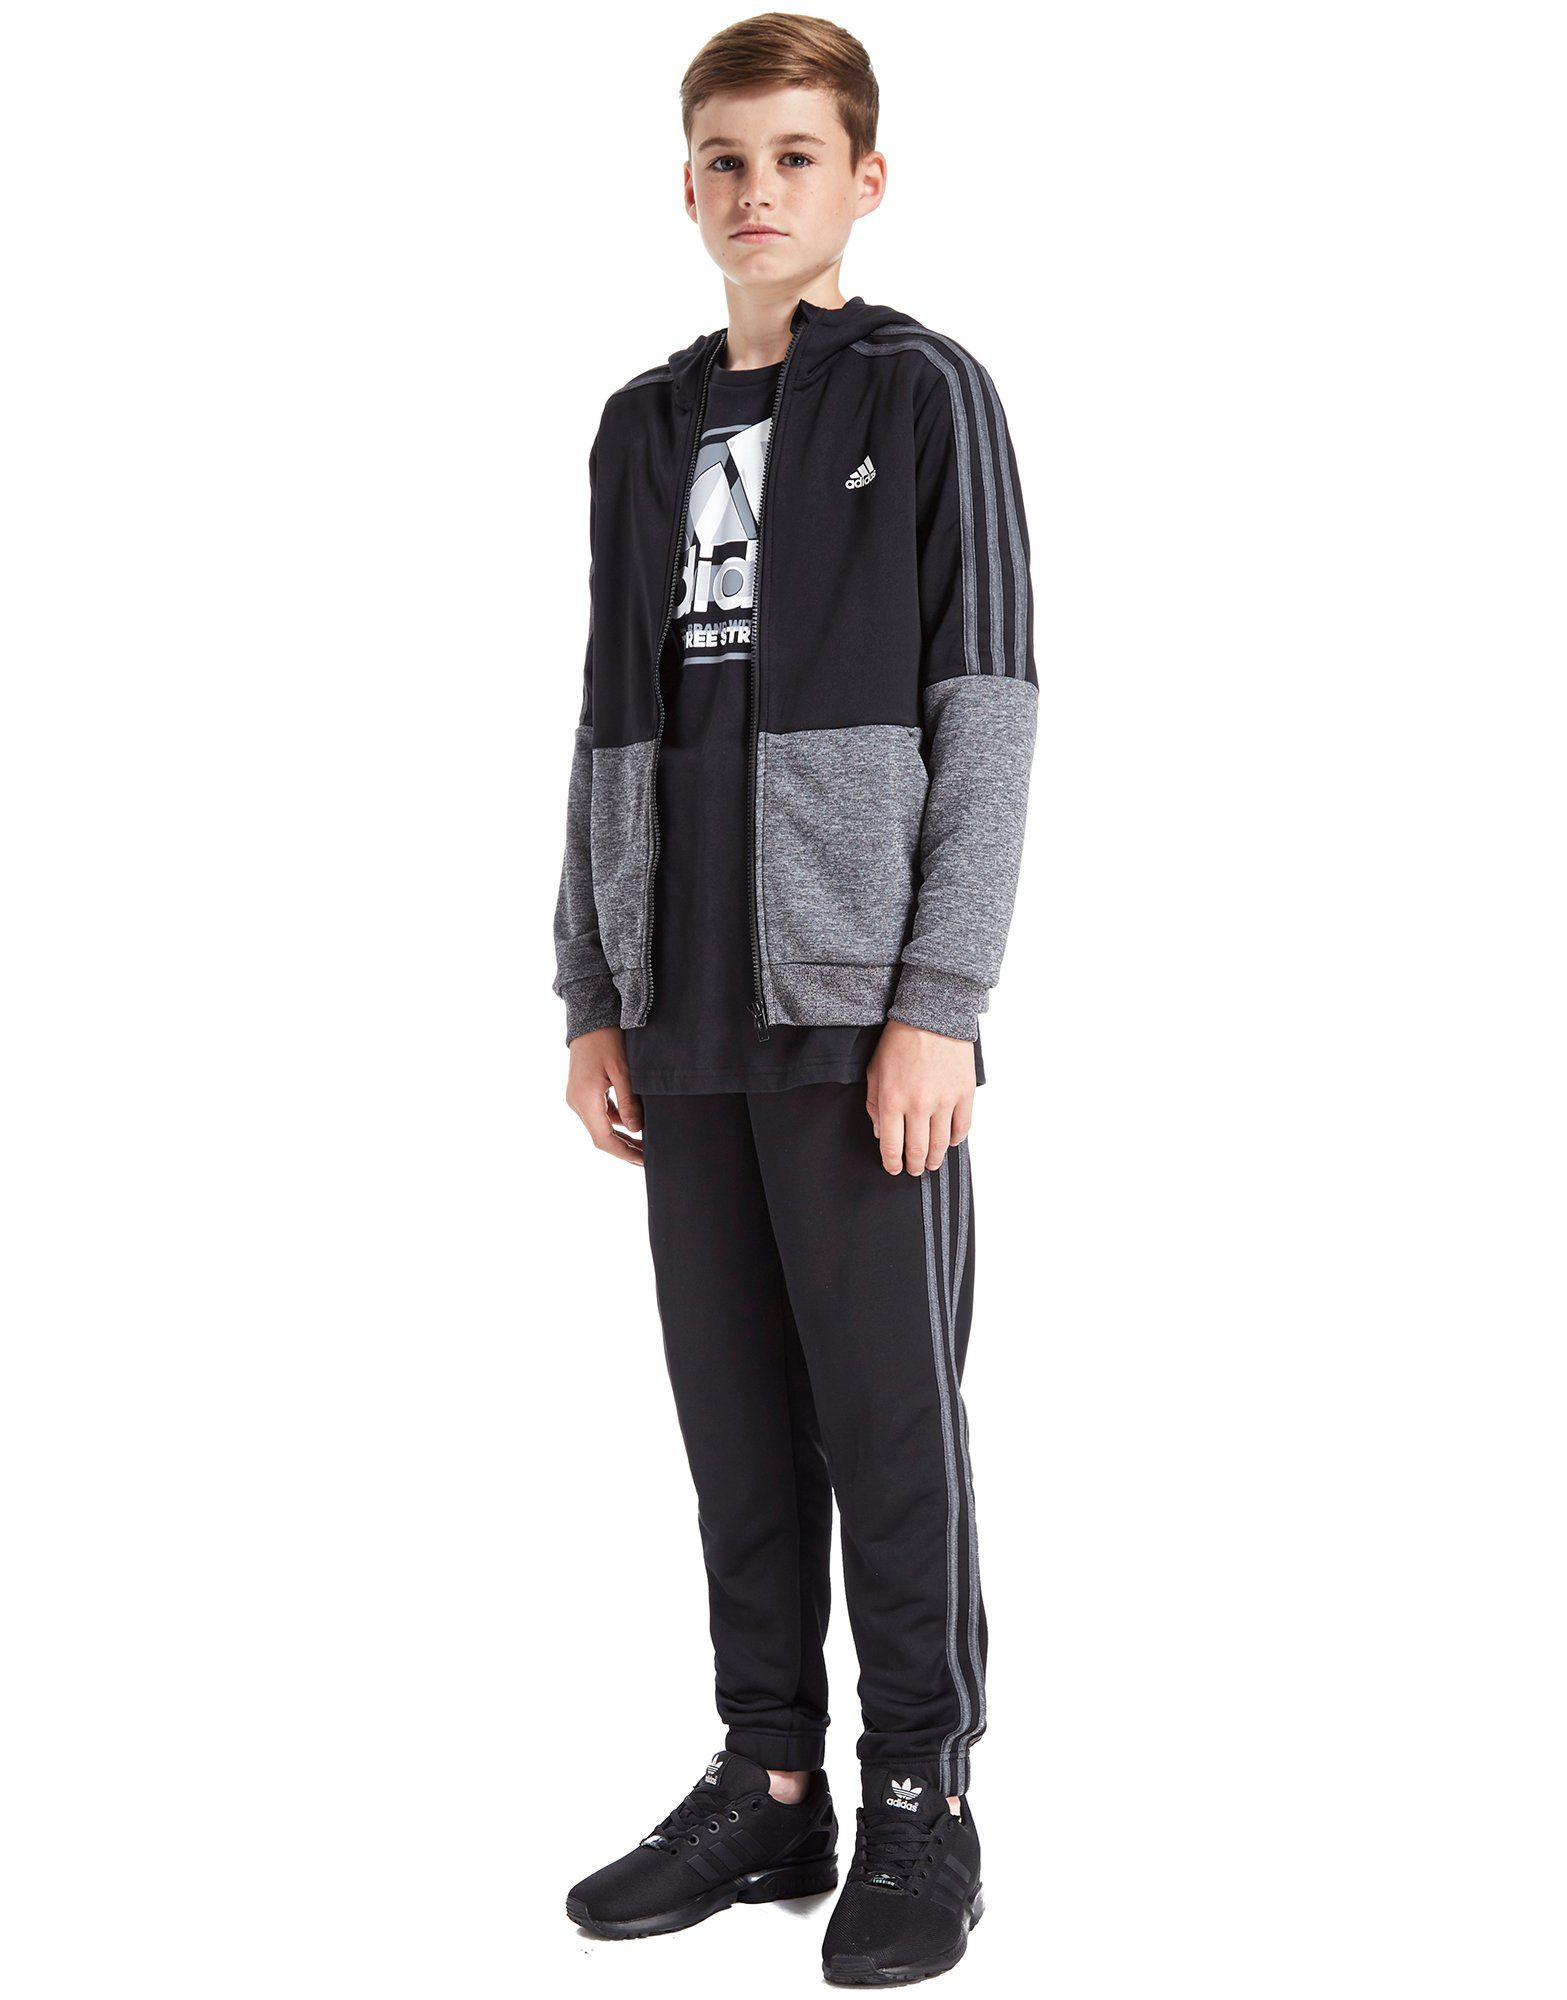 Shop adidas tracksuits, track pants, and jackets for men and women. Browse a variety of colors of tracksuits at russia-youtube.tk